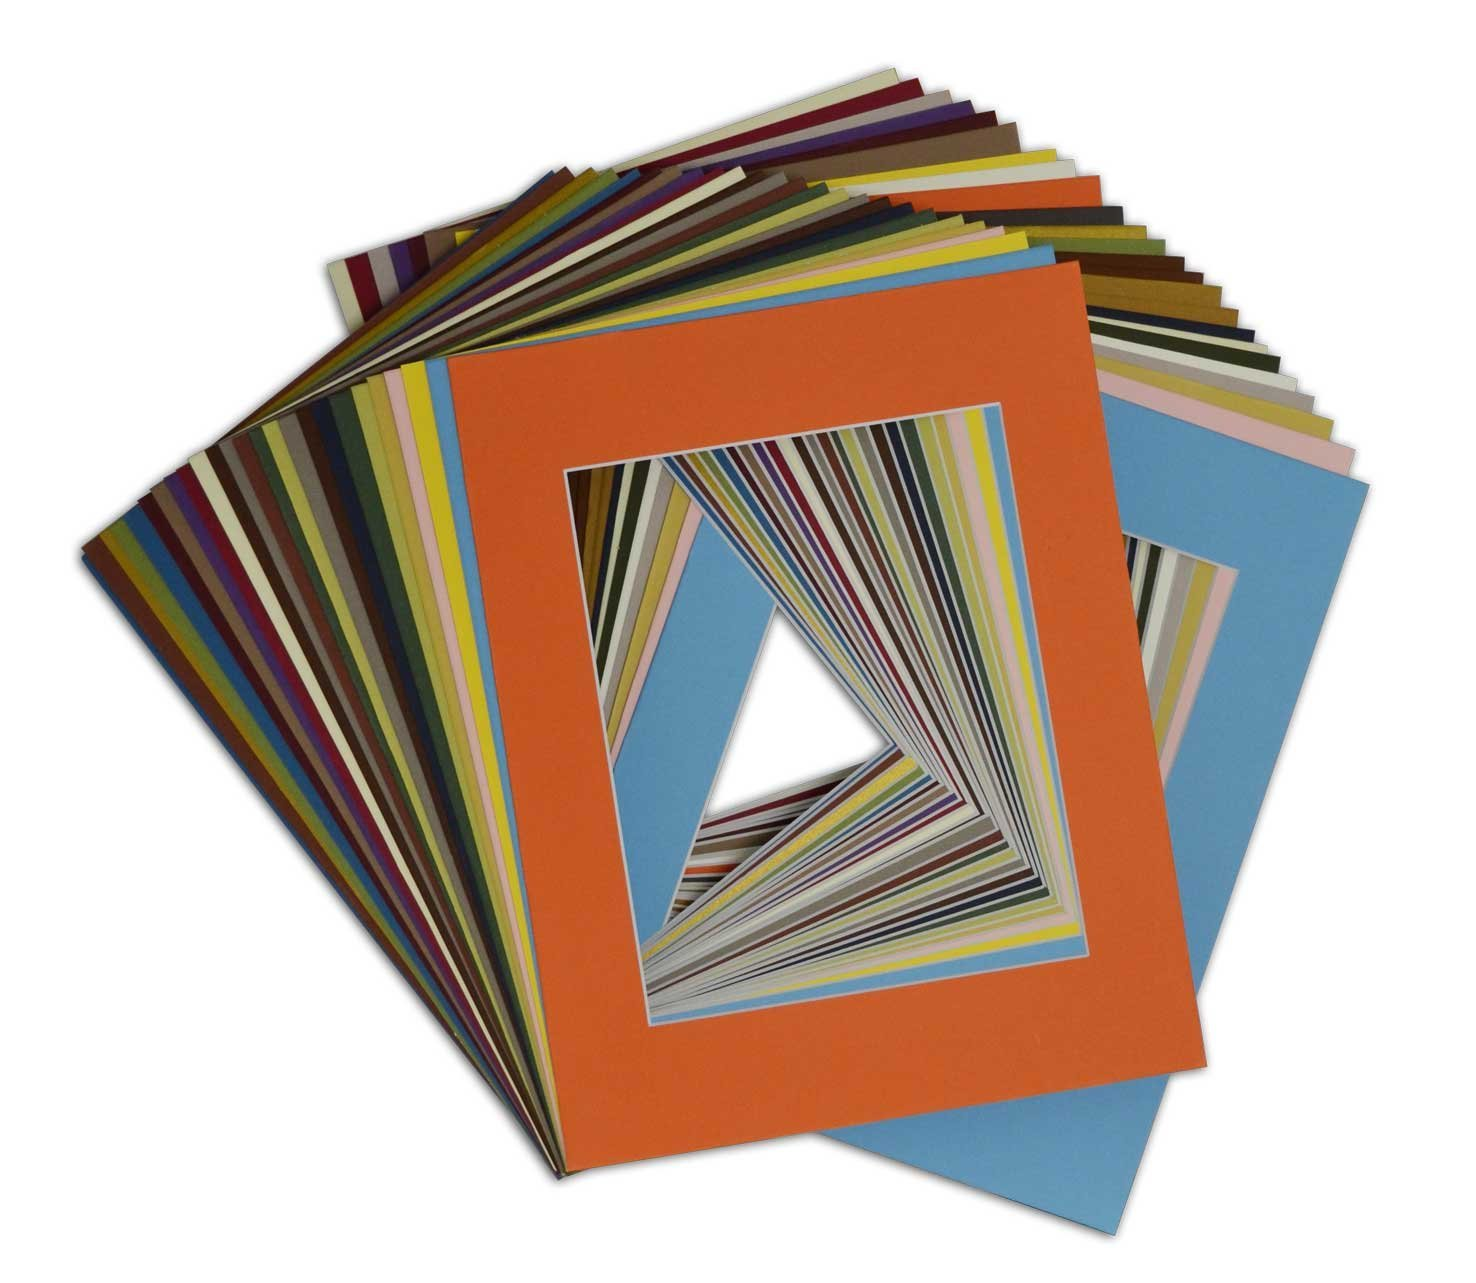 Artwork Pack of 50 11x14 Backing Boards DIY Project Golden State Art Use for Mats